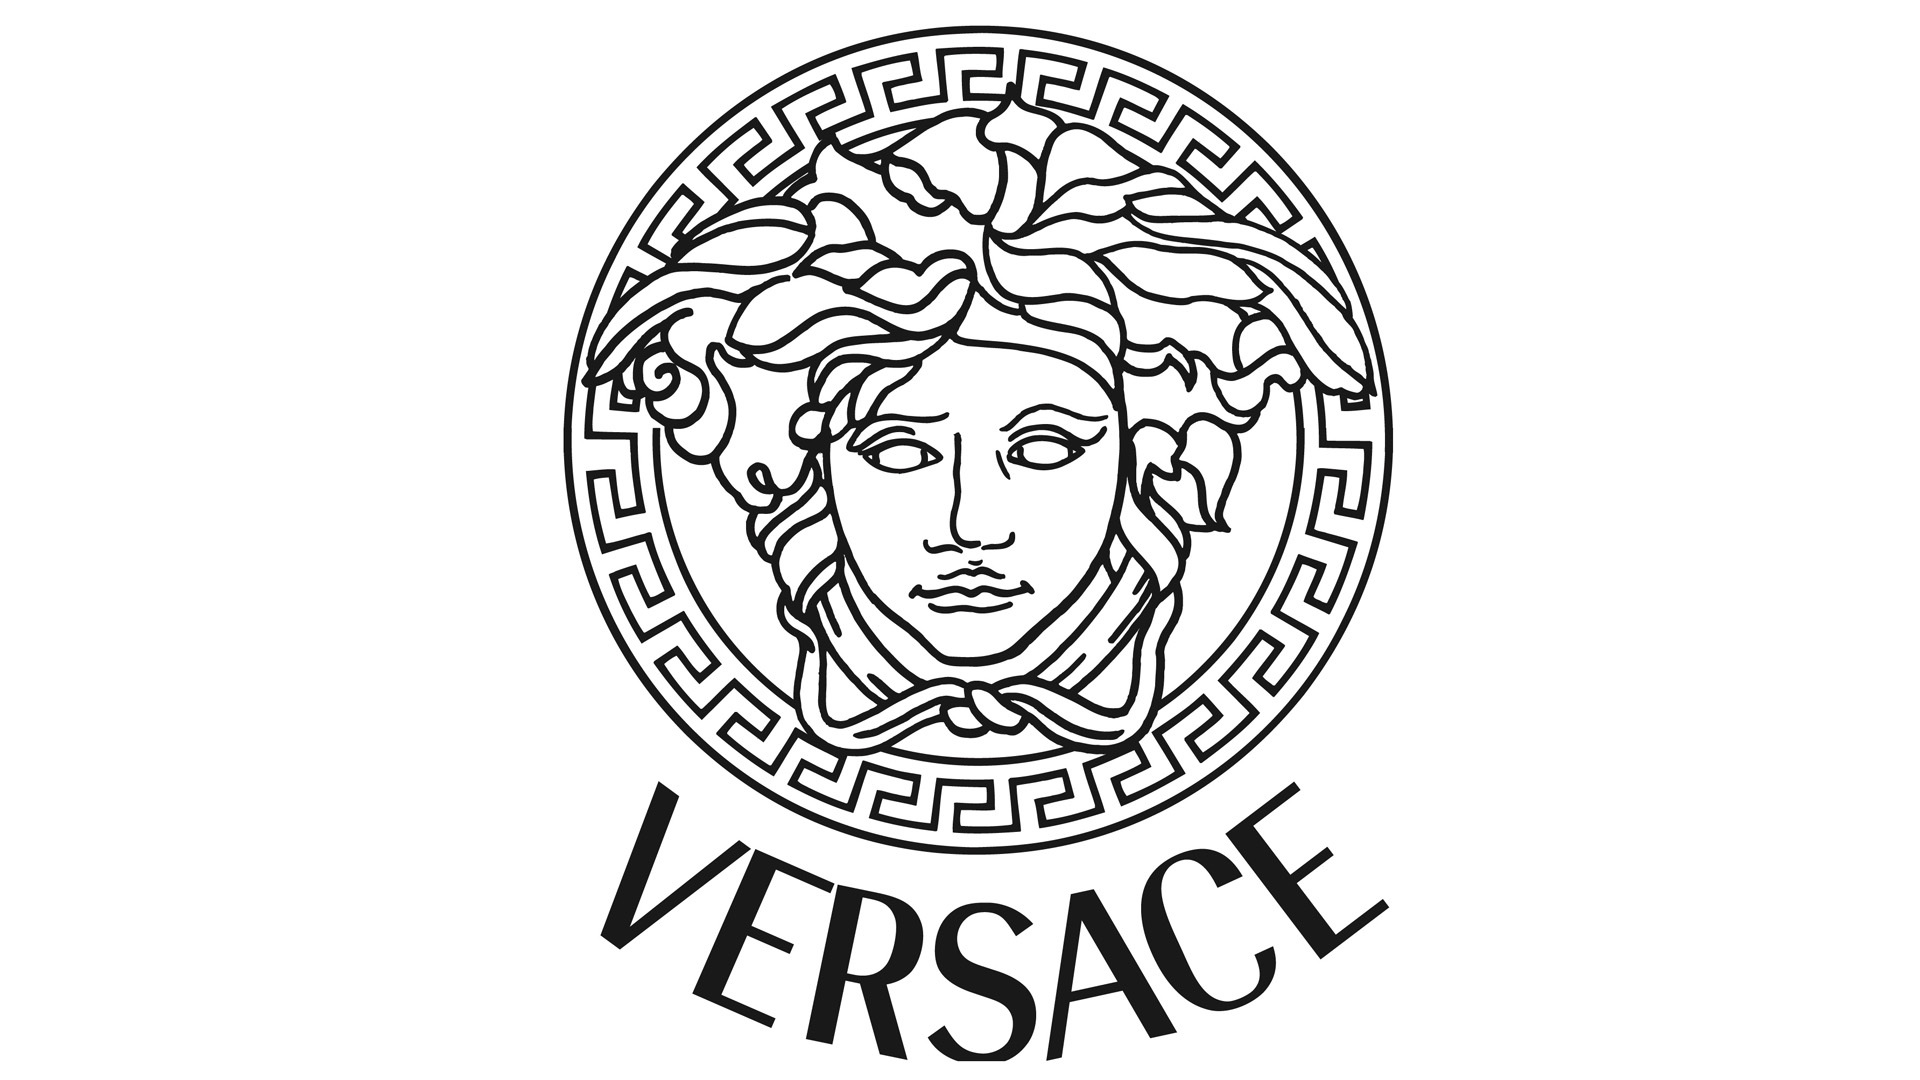 Versace wallpapers images photos pictures backgrounds - Versace logo wallpaper hd ...